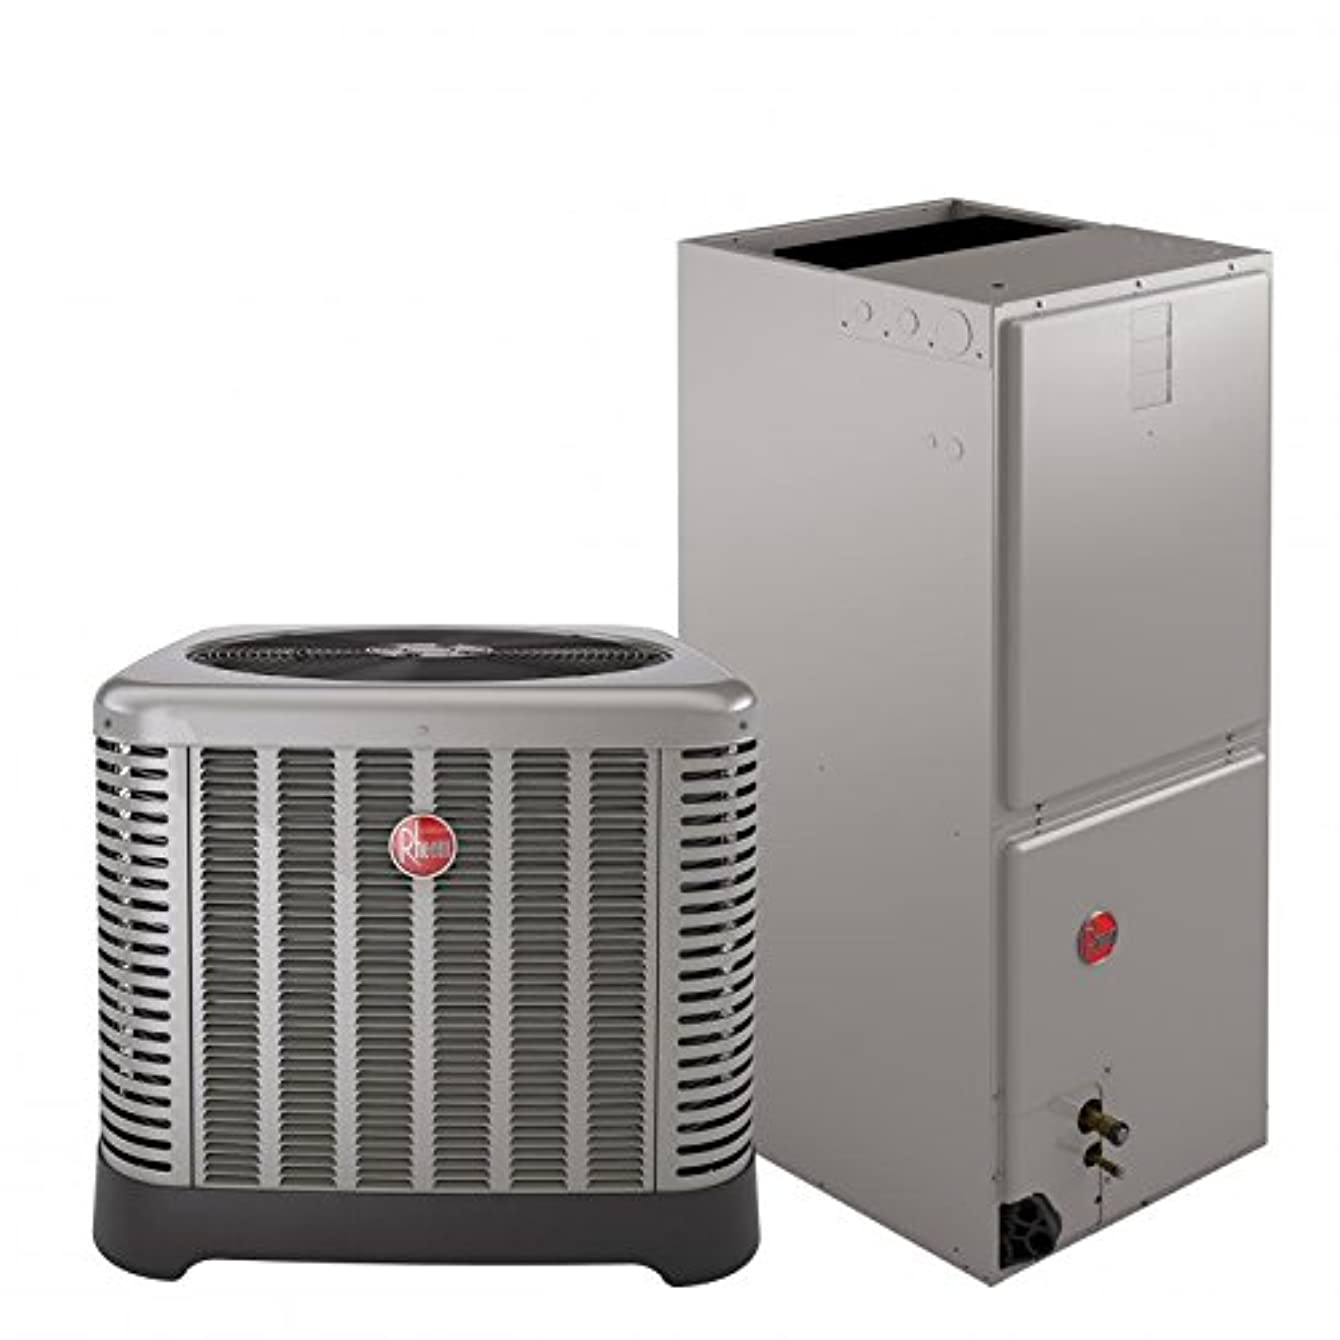 Rheem 2.5 Ton 16 Seer Ruud Air Conditioning System (AC only) RA1630AJ1NA - RH1T3617STANJA